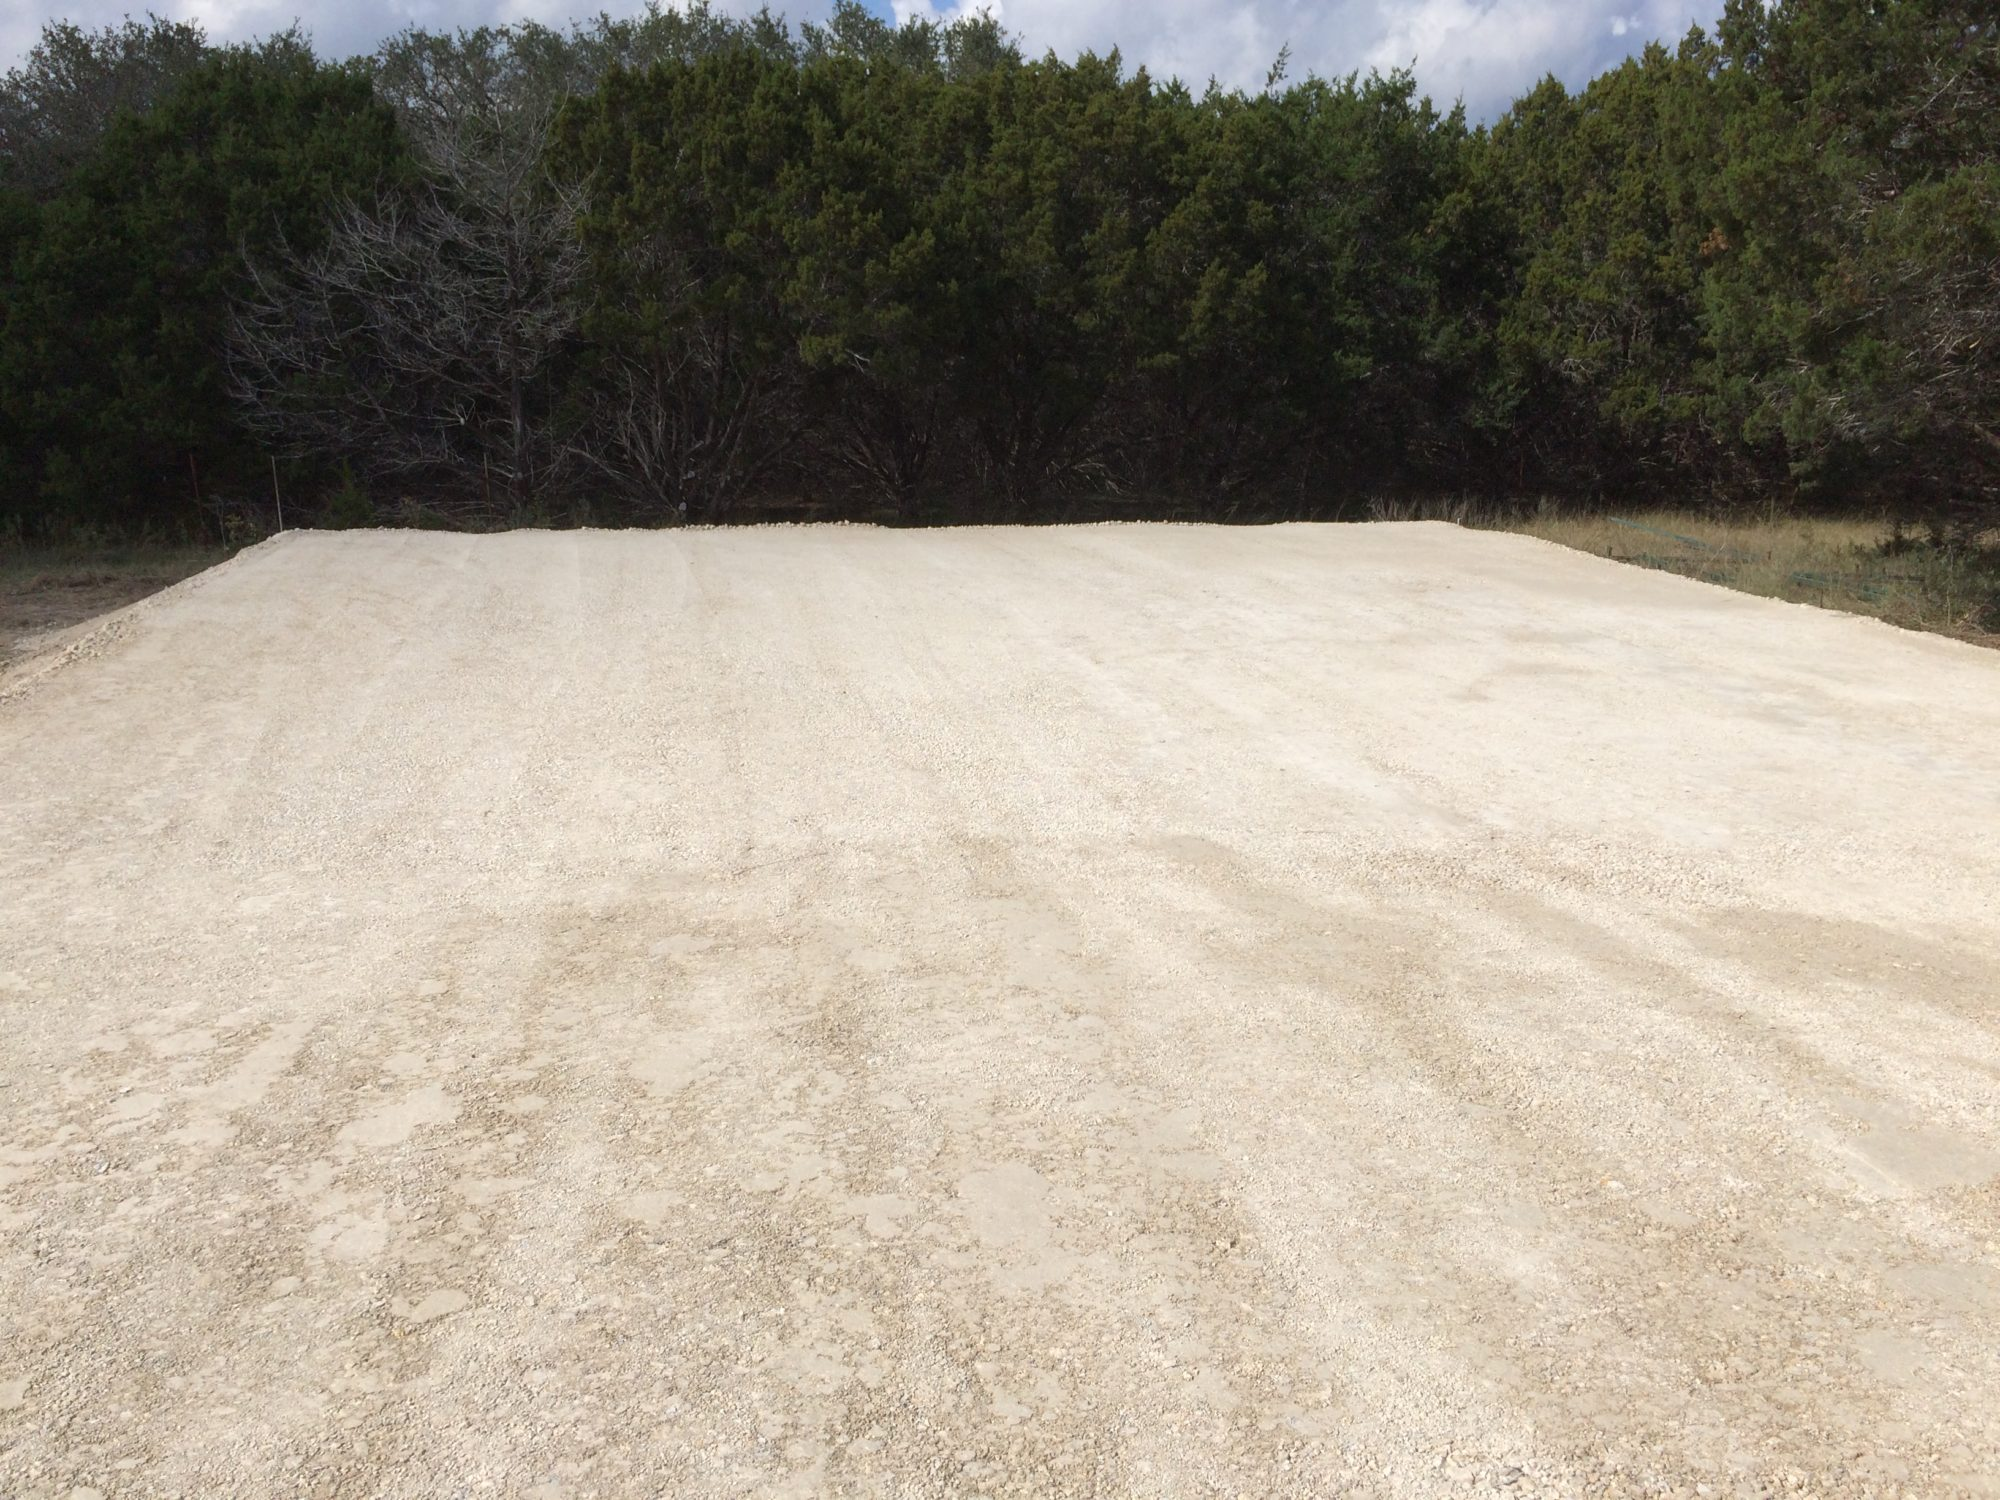 Land Clearing | Tree clearing | Cedar clearing | Tree removal | Cedar removal | Road Building | Pad site building | Rv pad site building | Trailer home pad site building | Barn pad site building